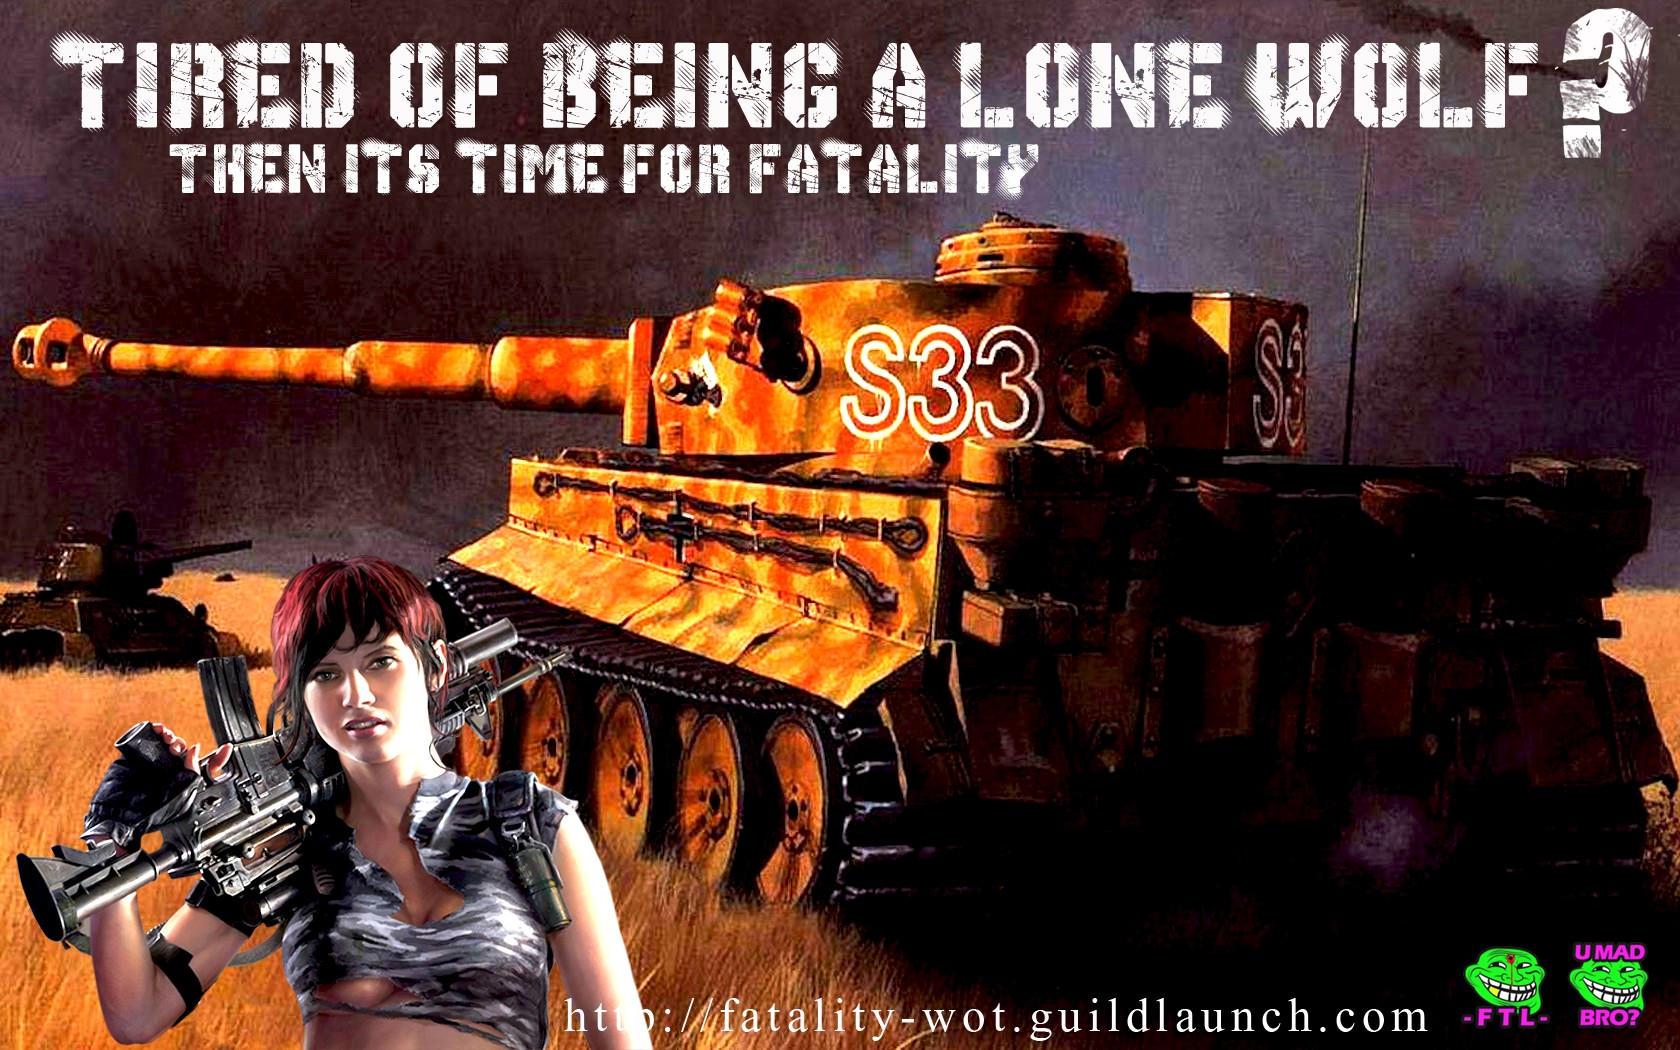 World of Tanks - TIGER HEAVY TANK FTL FTLTY CLAN WORLD OF TANKS FATALITY FATAL1TY